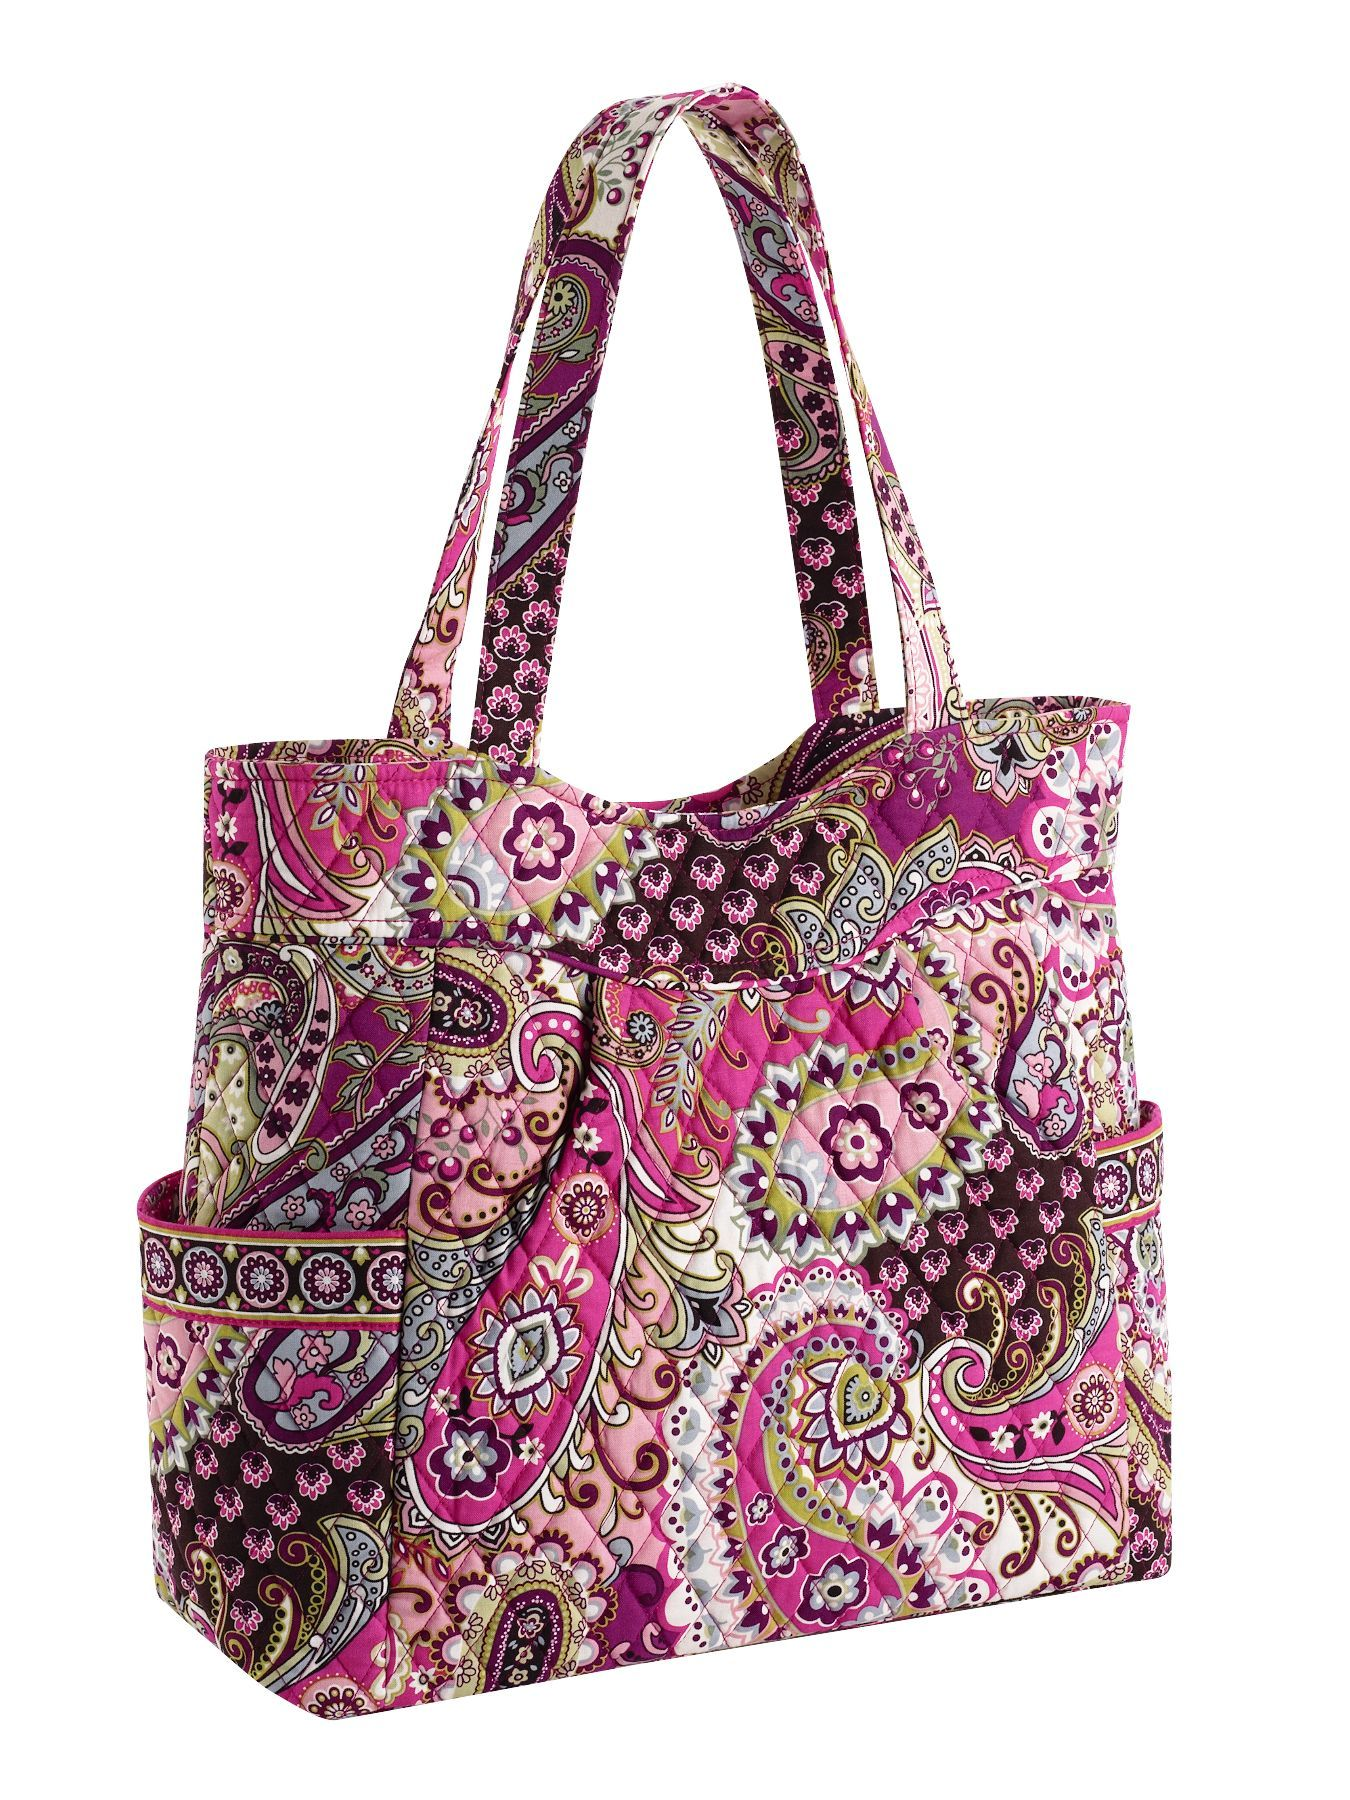 72024e931b Vera Bradley pleated tote in Very Berry Paisley. My new knitting bag ...